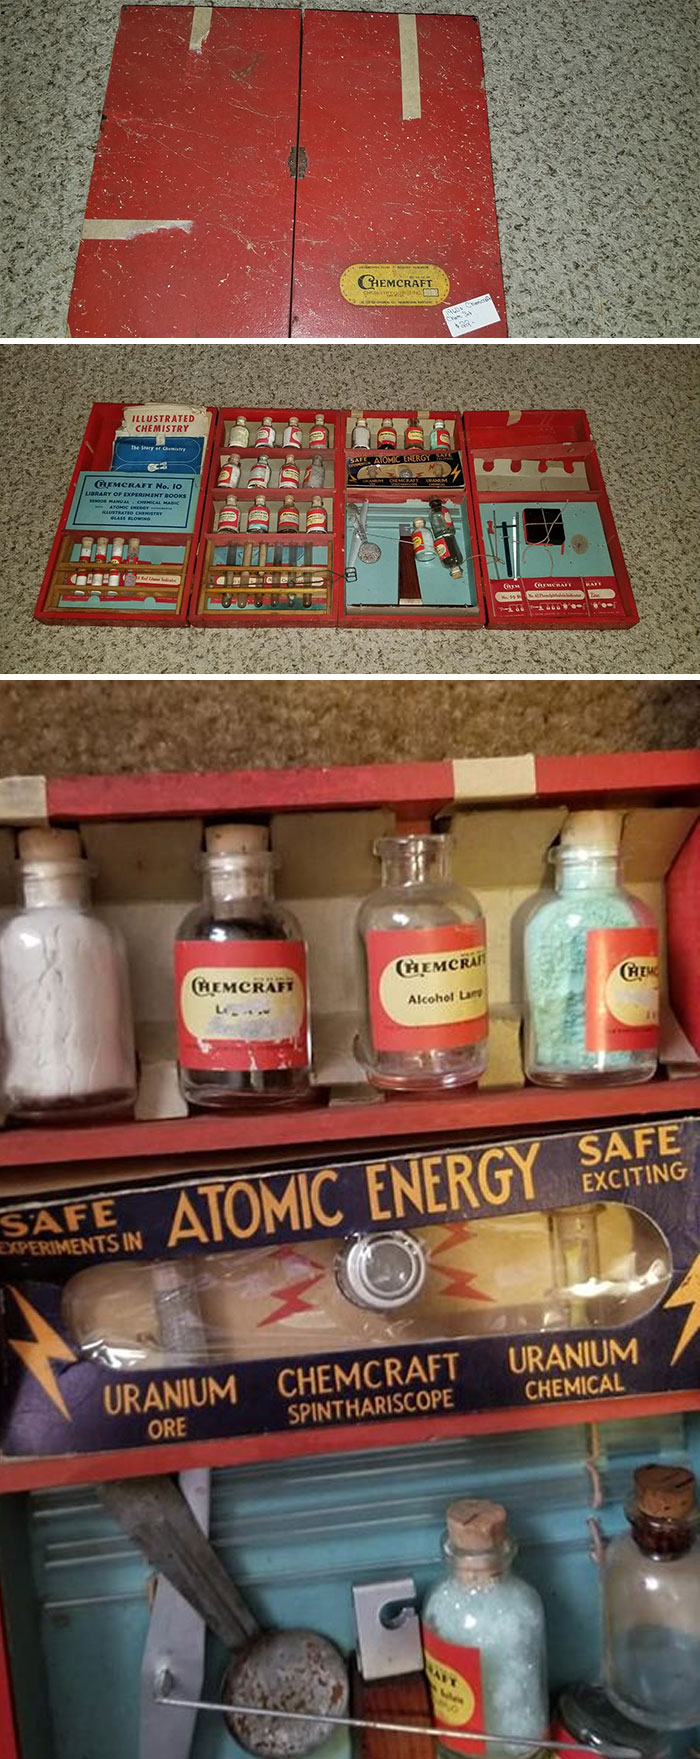 I Found This Kids Chemcraft Chemistry Set At A Flea Market In Nashville, Tennessee. People Would Lose Their Minds If Something Like This Was Released Today For Kids To Play With